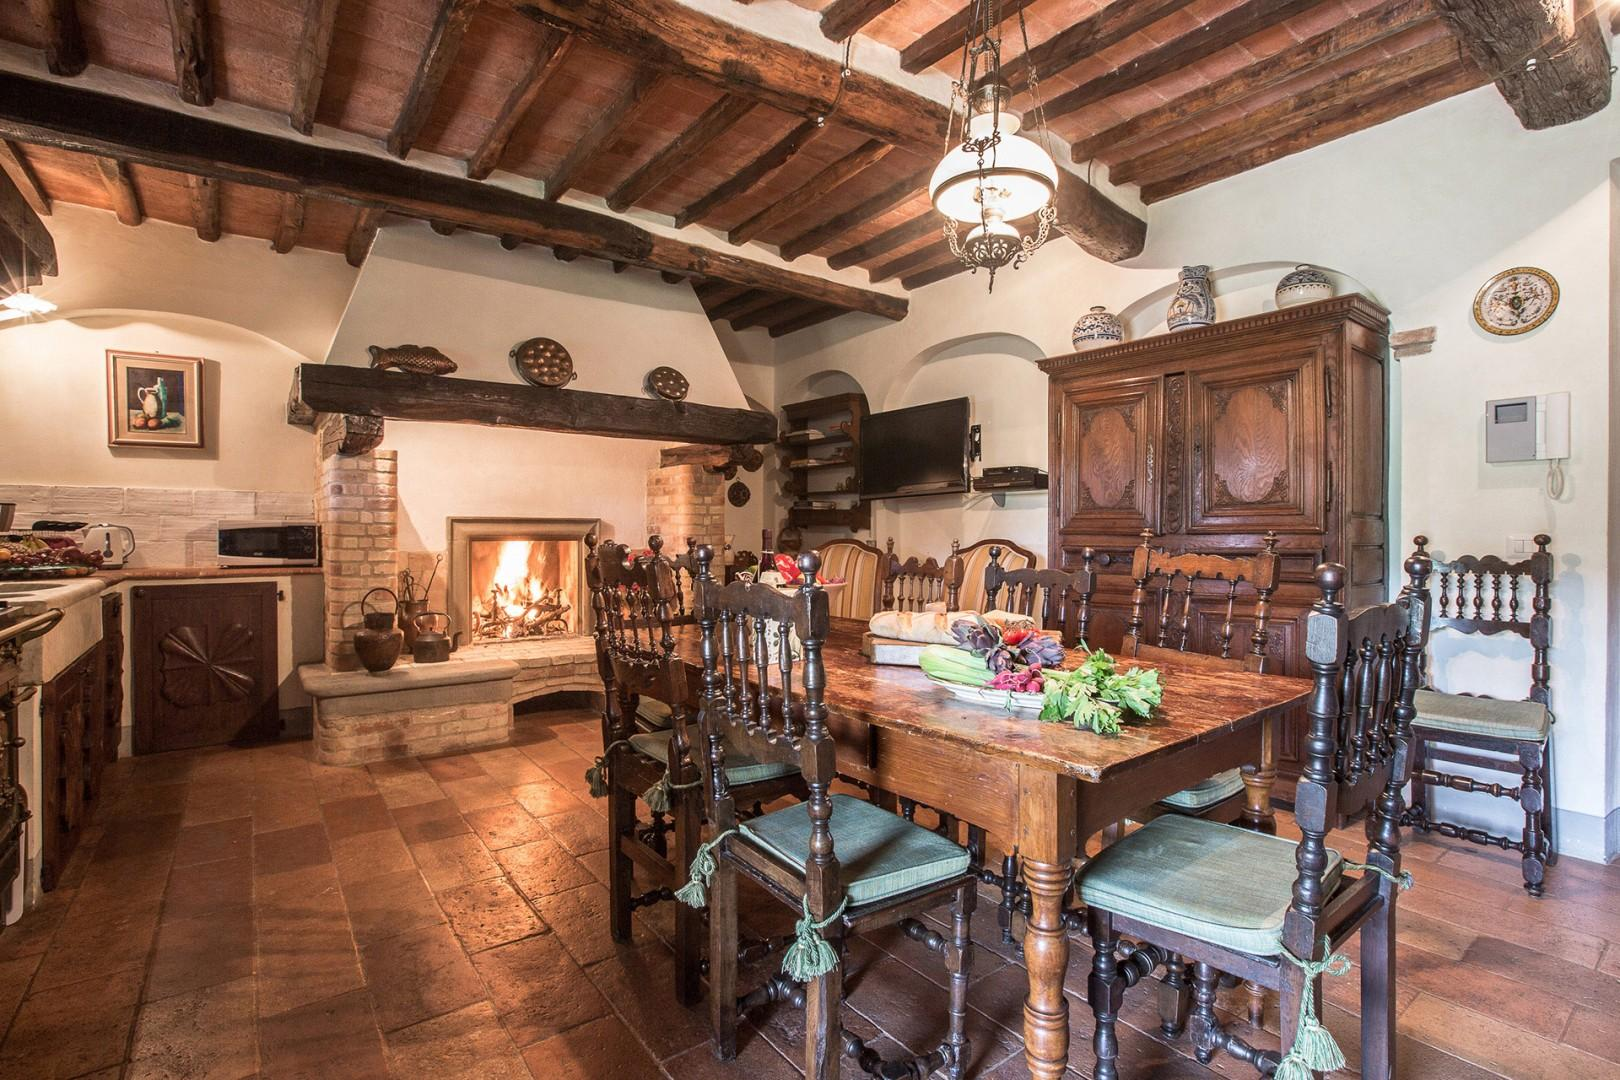 The kitchen has a farm table and large working fireplace. Full size refrigerator and freezer.